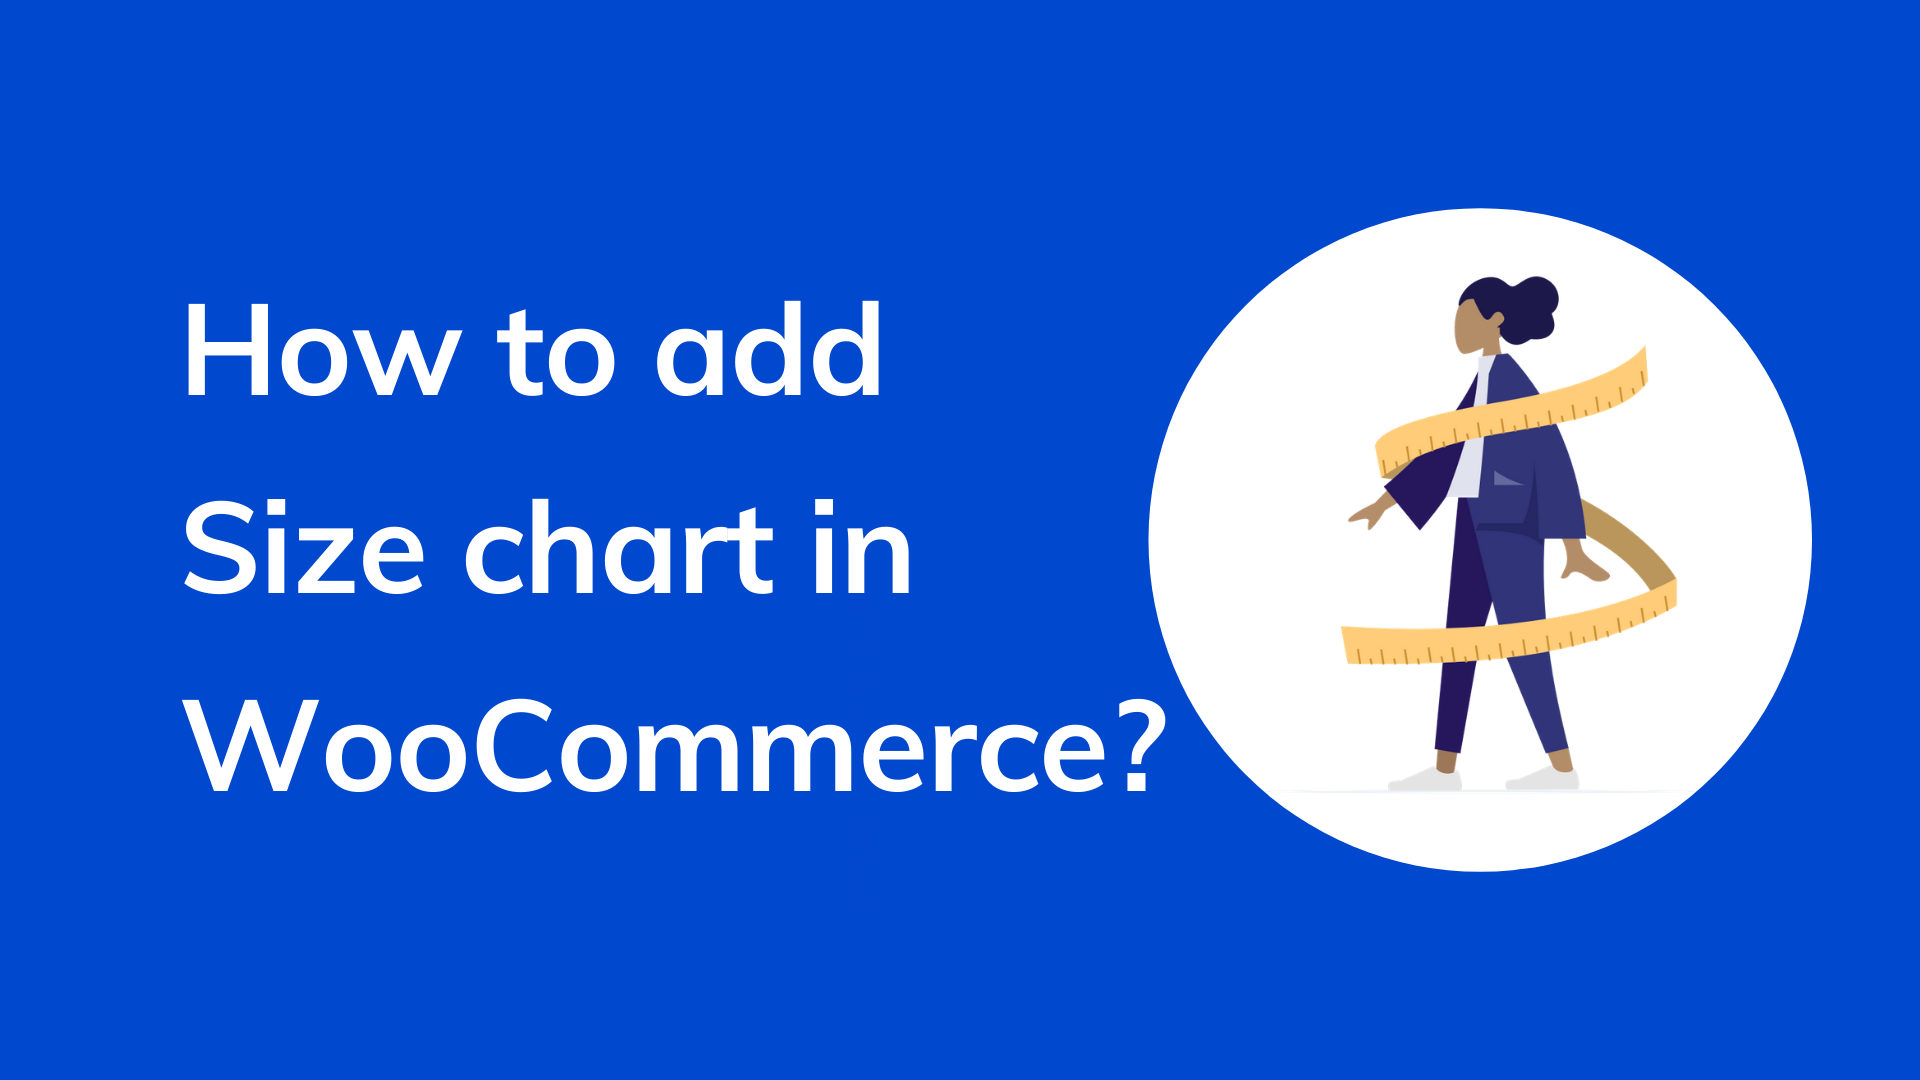 How to add a size chart in WooCommerce?